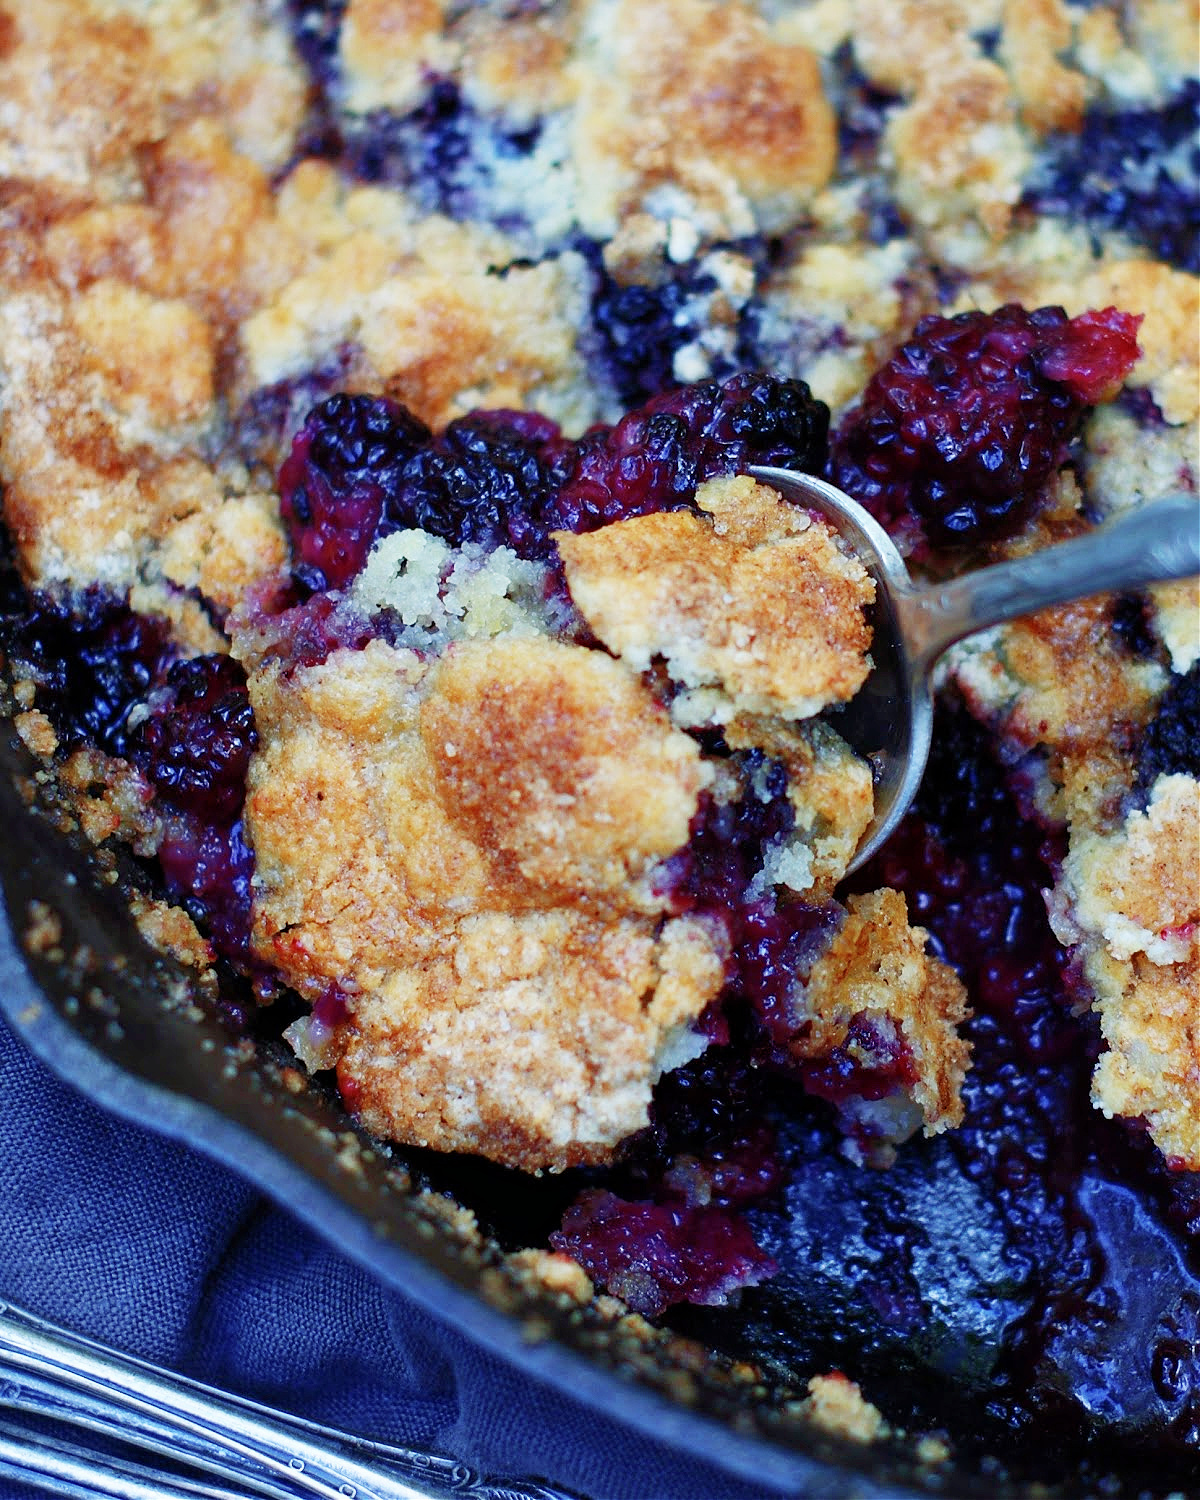 Serving Easy blackberry cobbler from the skillet to show simple crust and berries.